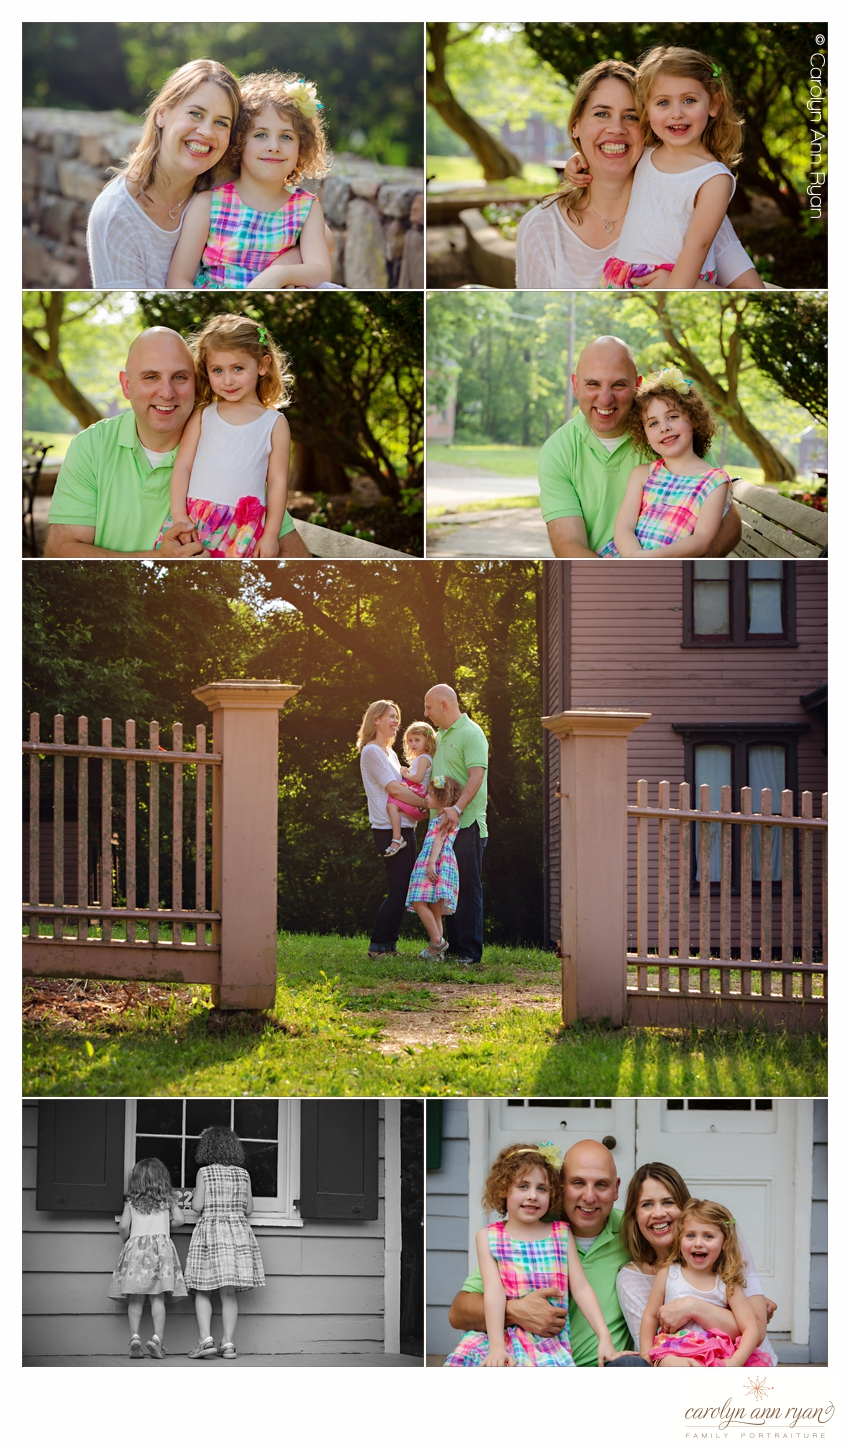 Sweet South Charlotte Family Photographer Carolyn Ann Ryan